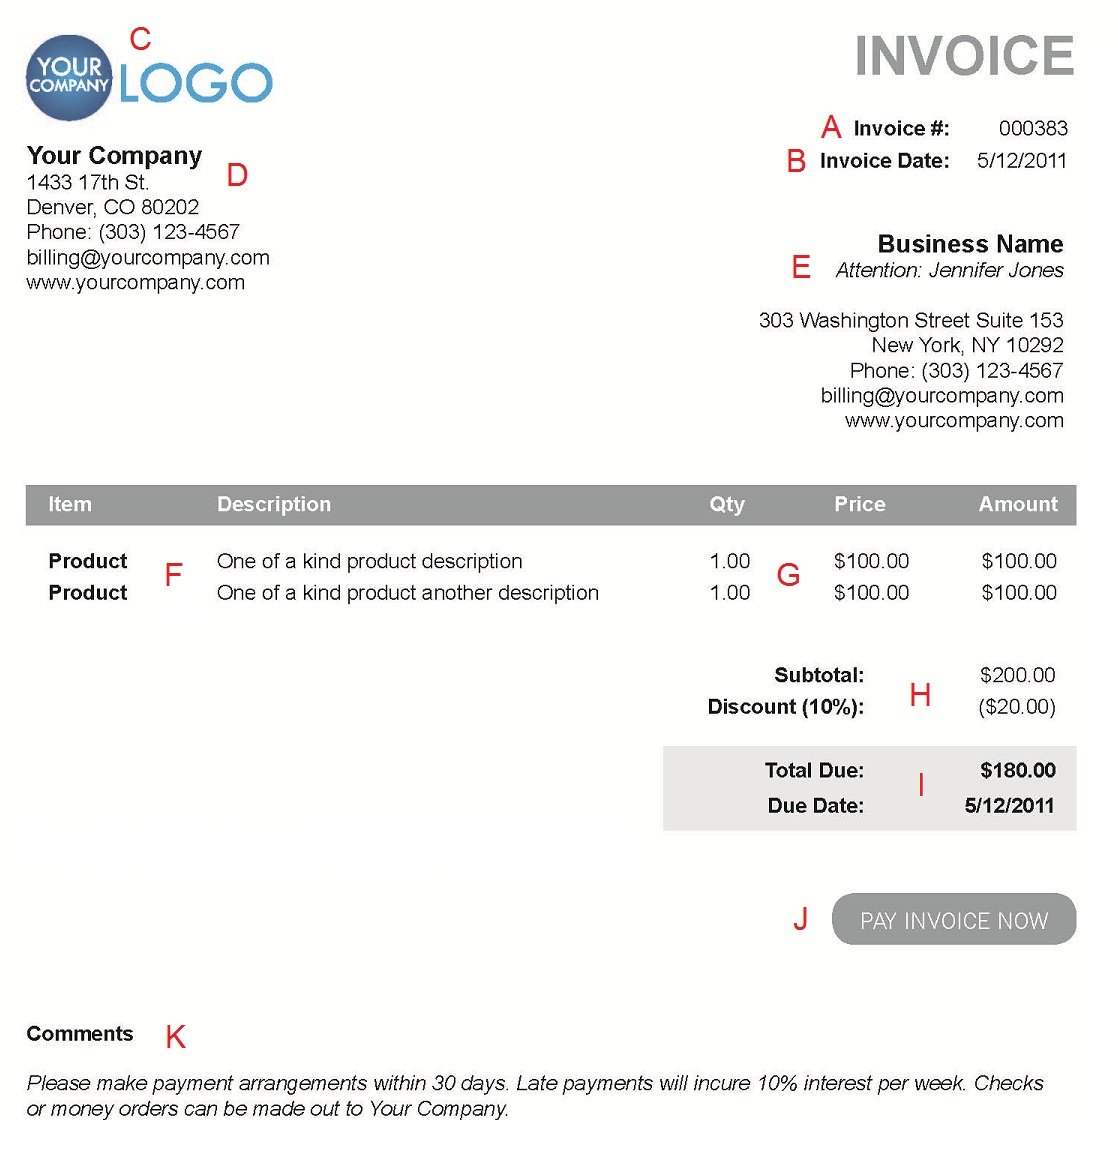 Bringjacobolivierhomeus  Outstanding The  Different Sections Of An Electronic Payment Invoice With Hot A  With Breathtaking Business Receipt Templates Also Pick Up Receipt In Addition Gross Receipt Definition And Can I Return An Item Without A Receipt As Well As Receipt Scanners Reviews Additionally Neatdesk Receipt Scanner From Paysimplecom With Bringjacobolivierhomeus  Hot The  Different Sections Of An Electronic Payment Invoice With Breathtaking A  And Outstanding Business Receipt Templates Also Pick Up Receipt In Addition Gross Receipt Definition From Paysimplecom